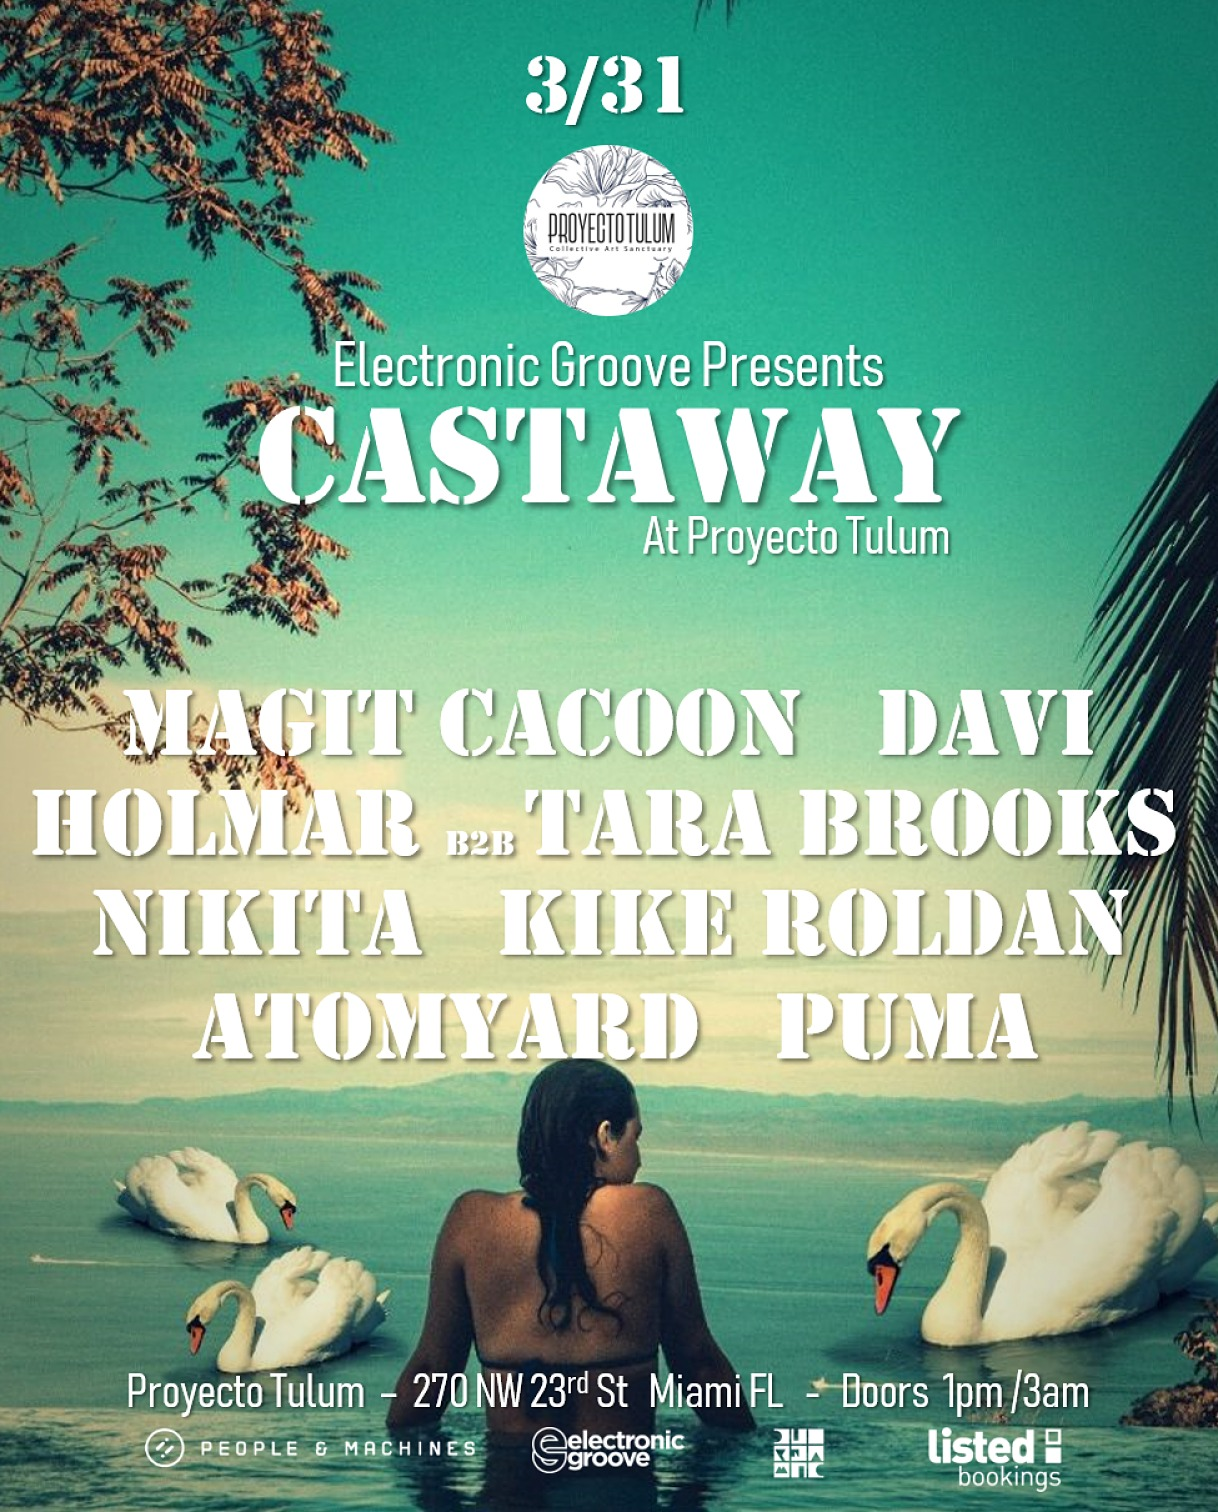 Electronic Groove presents Castaway at Proyecto Tulum Image